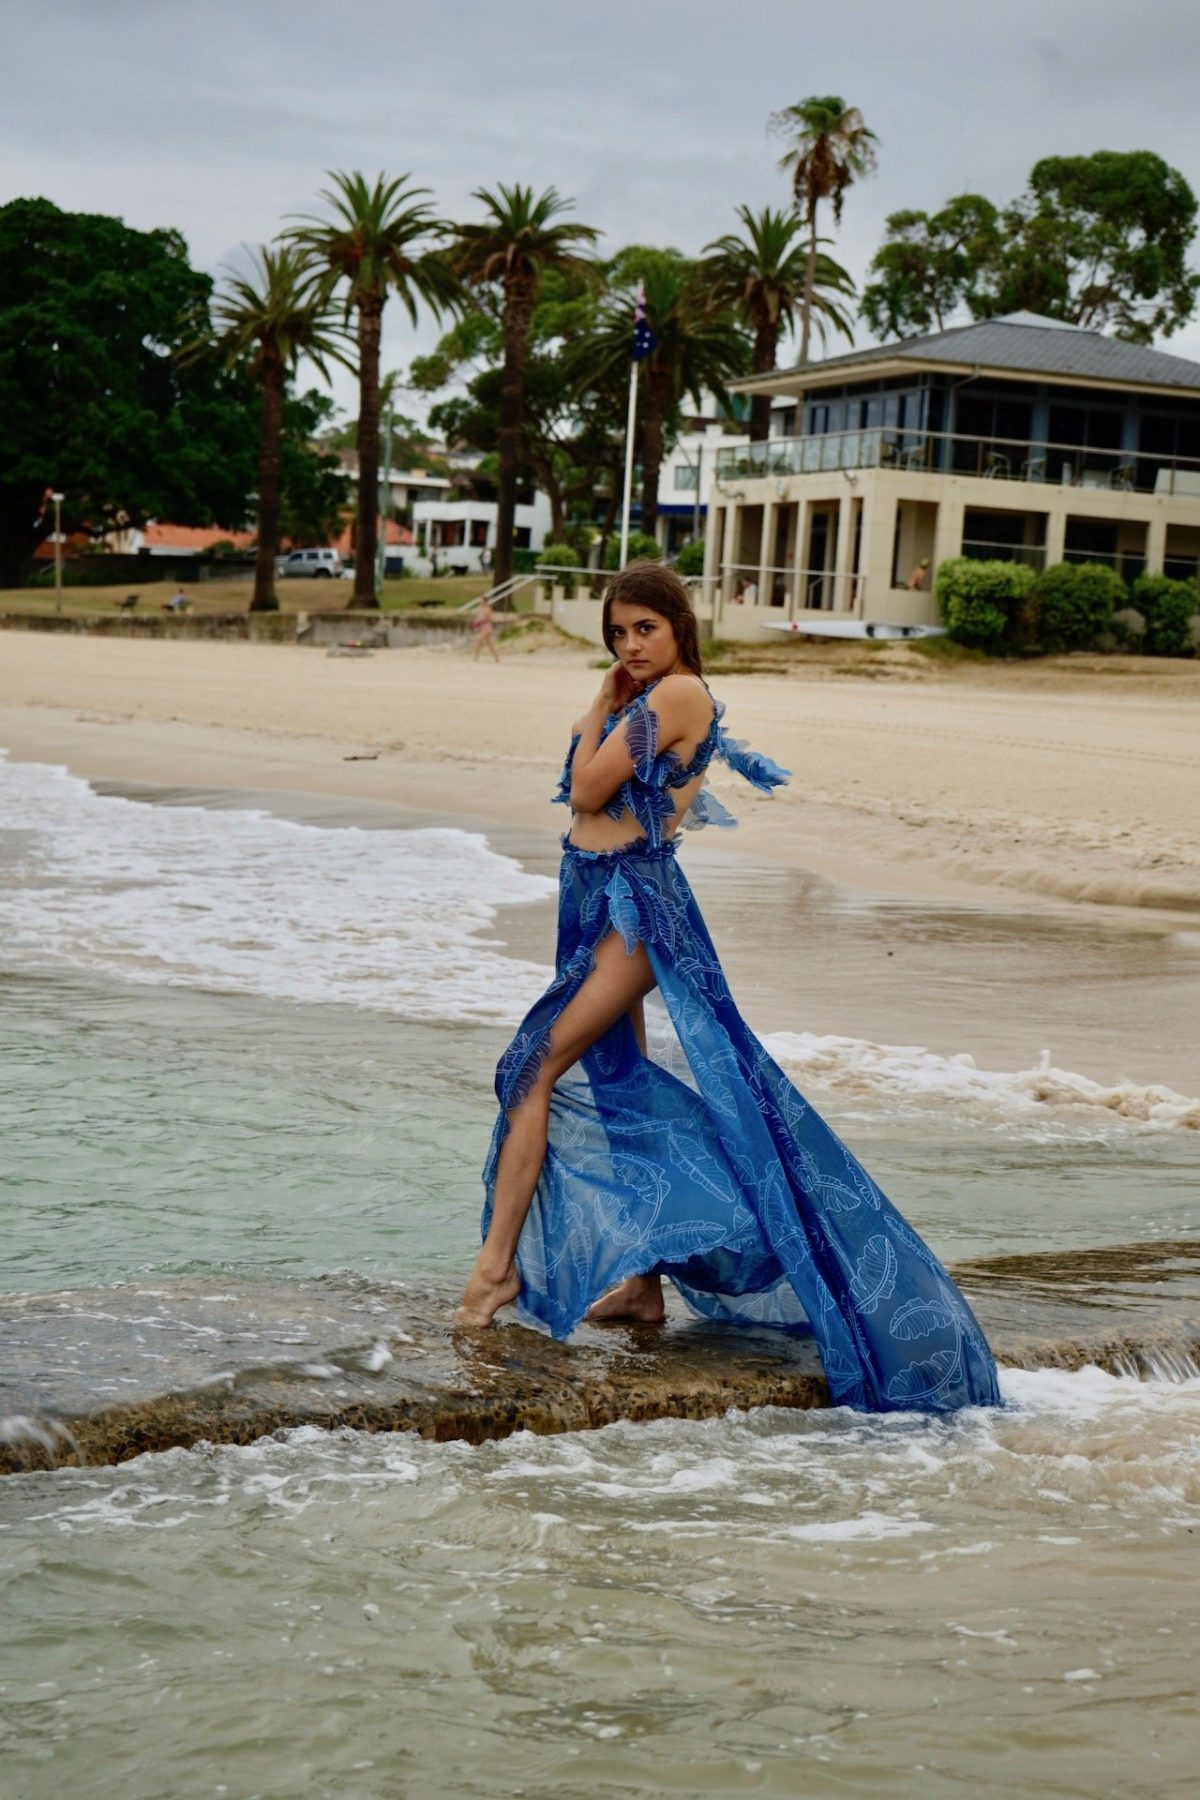 Blue palm top and skirt dress set product image